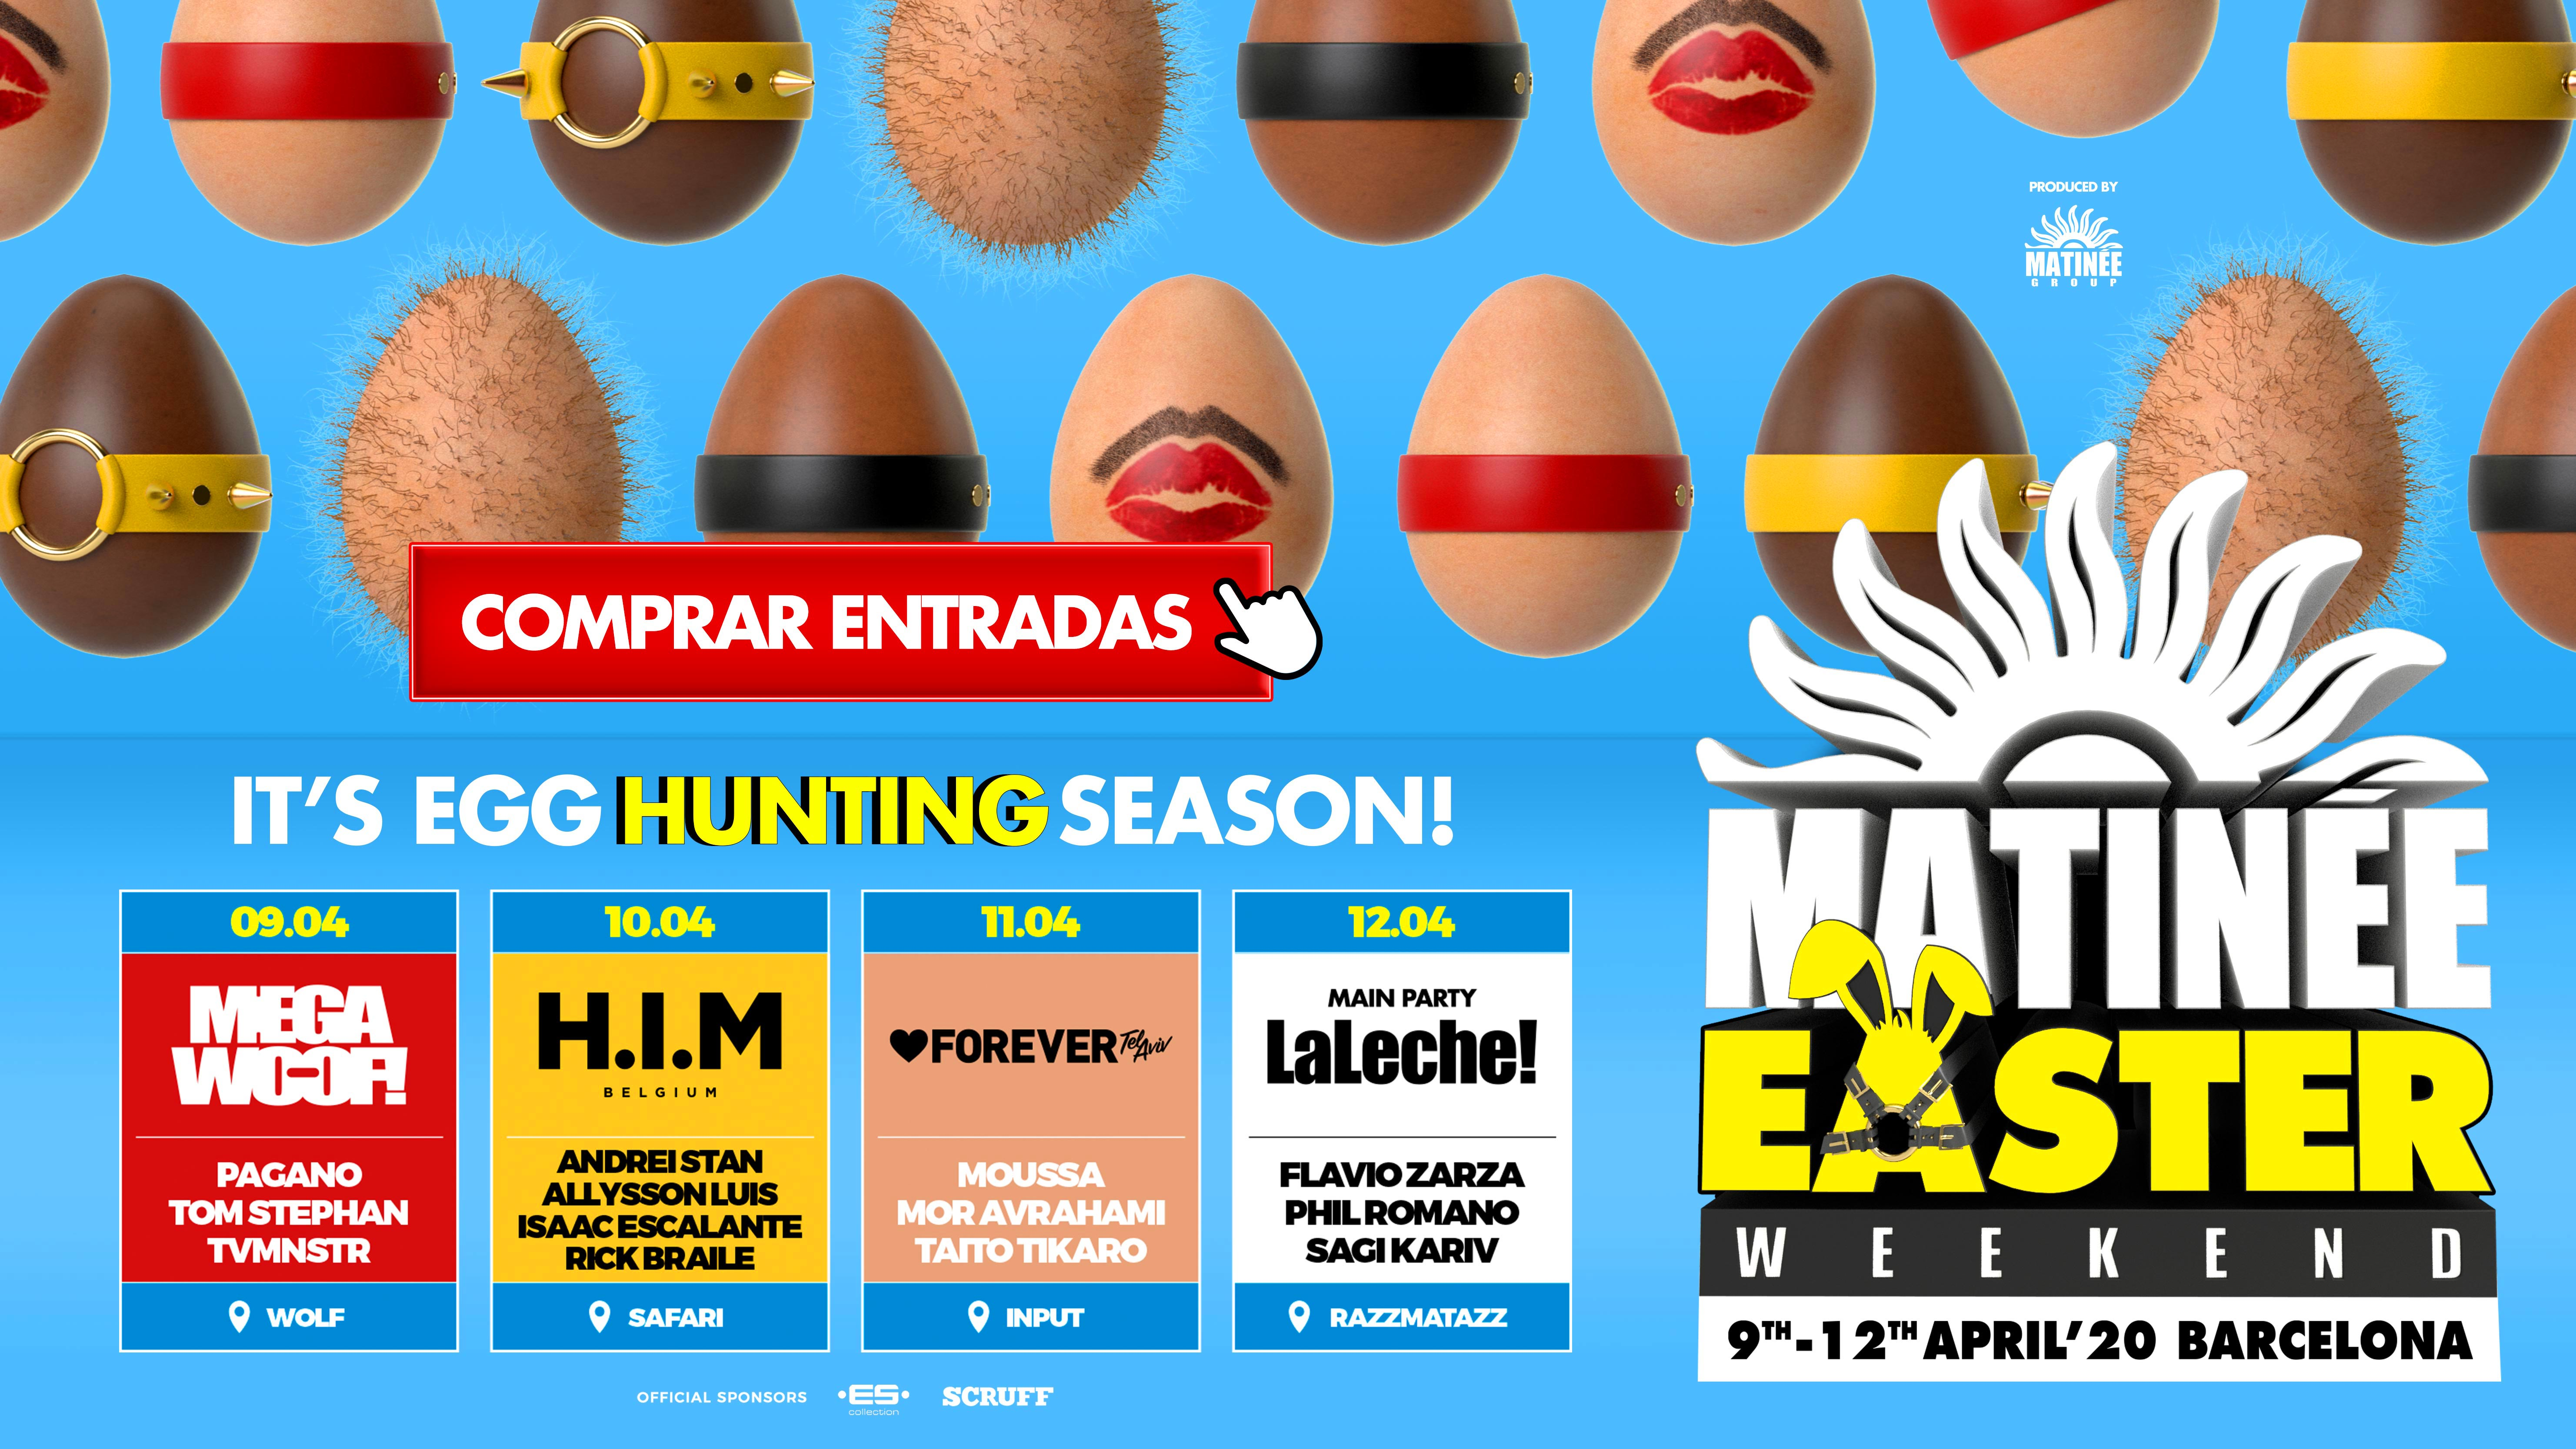 easter2020_castellano_Matineegroup_gayfestival_gay_gayparty_barcelona_matineeeaster